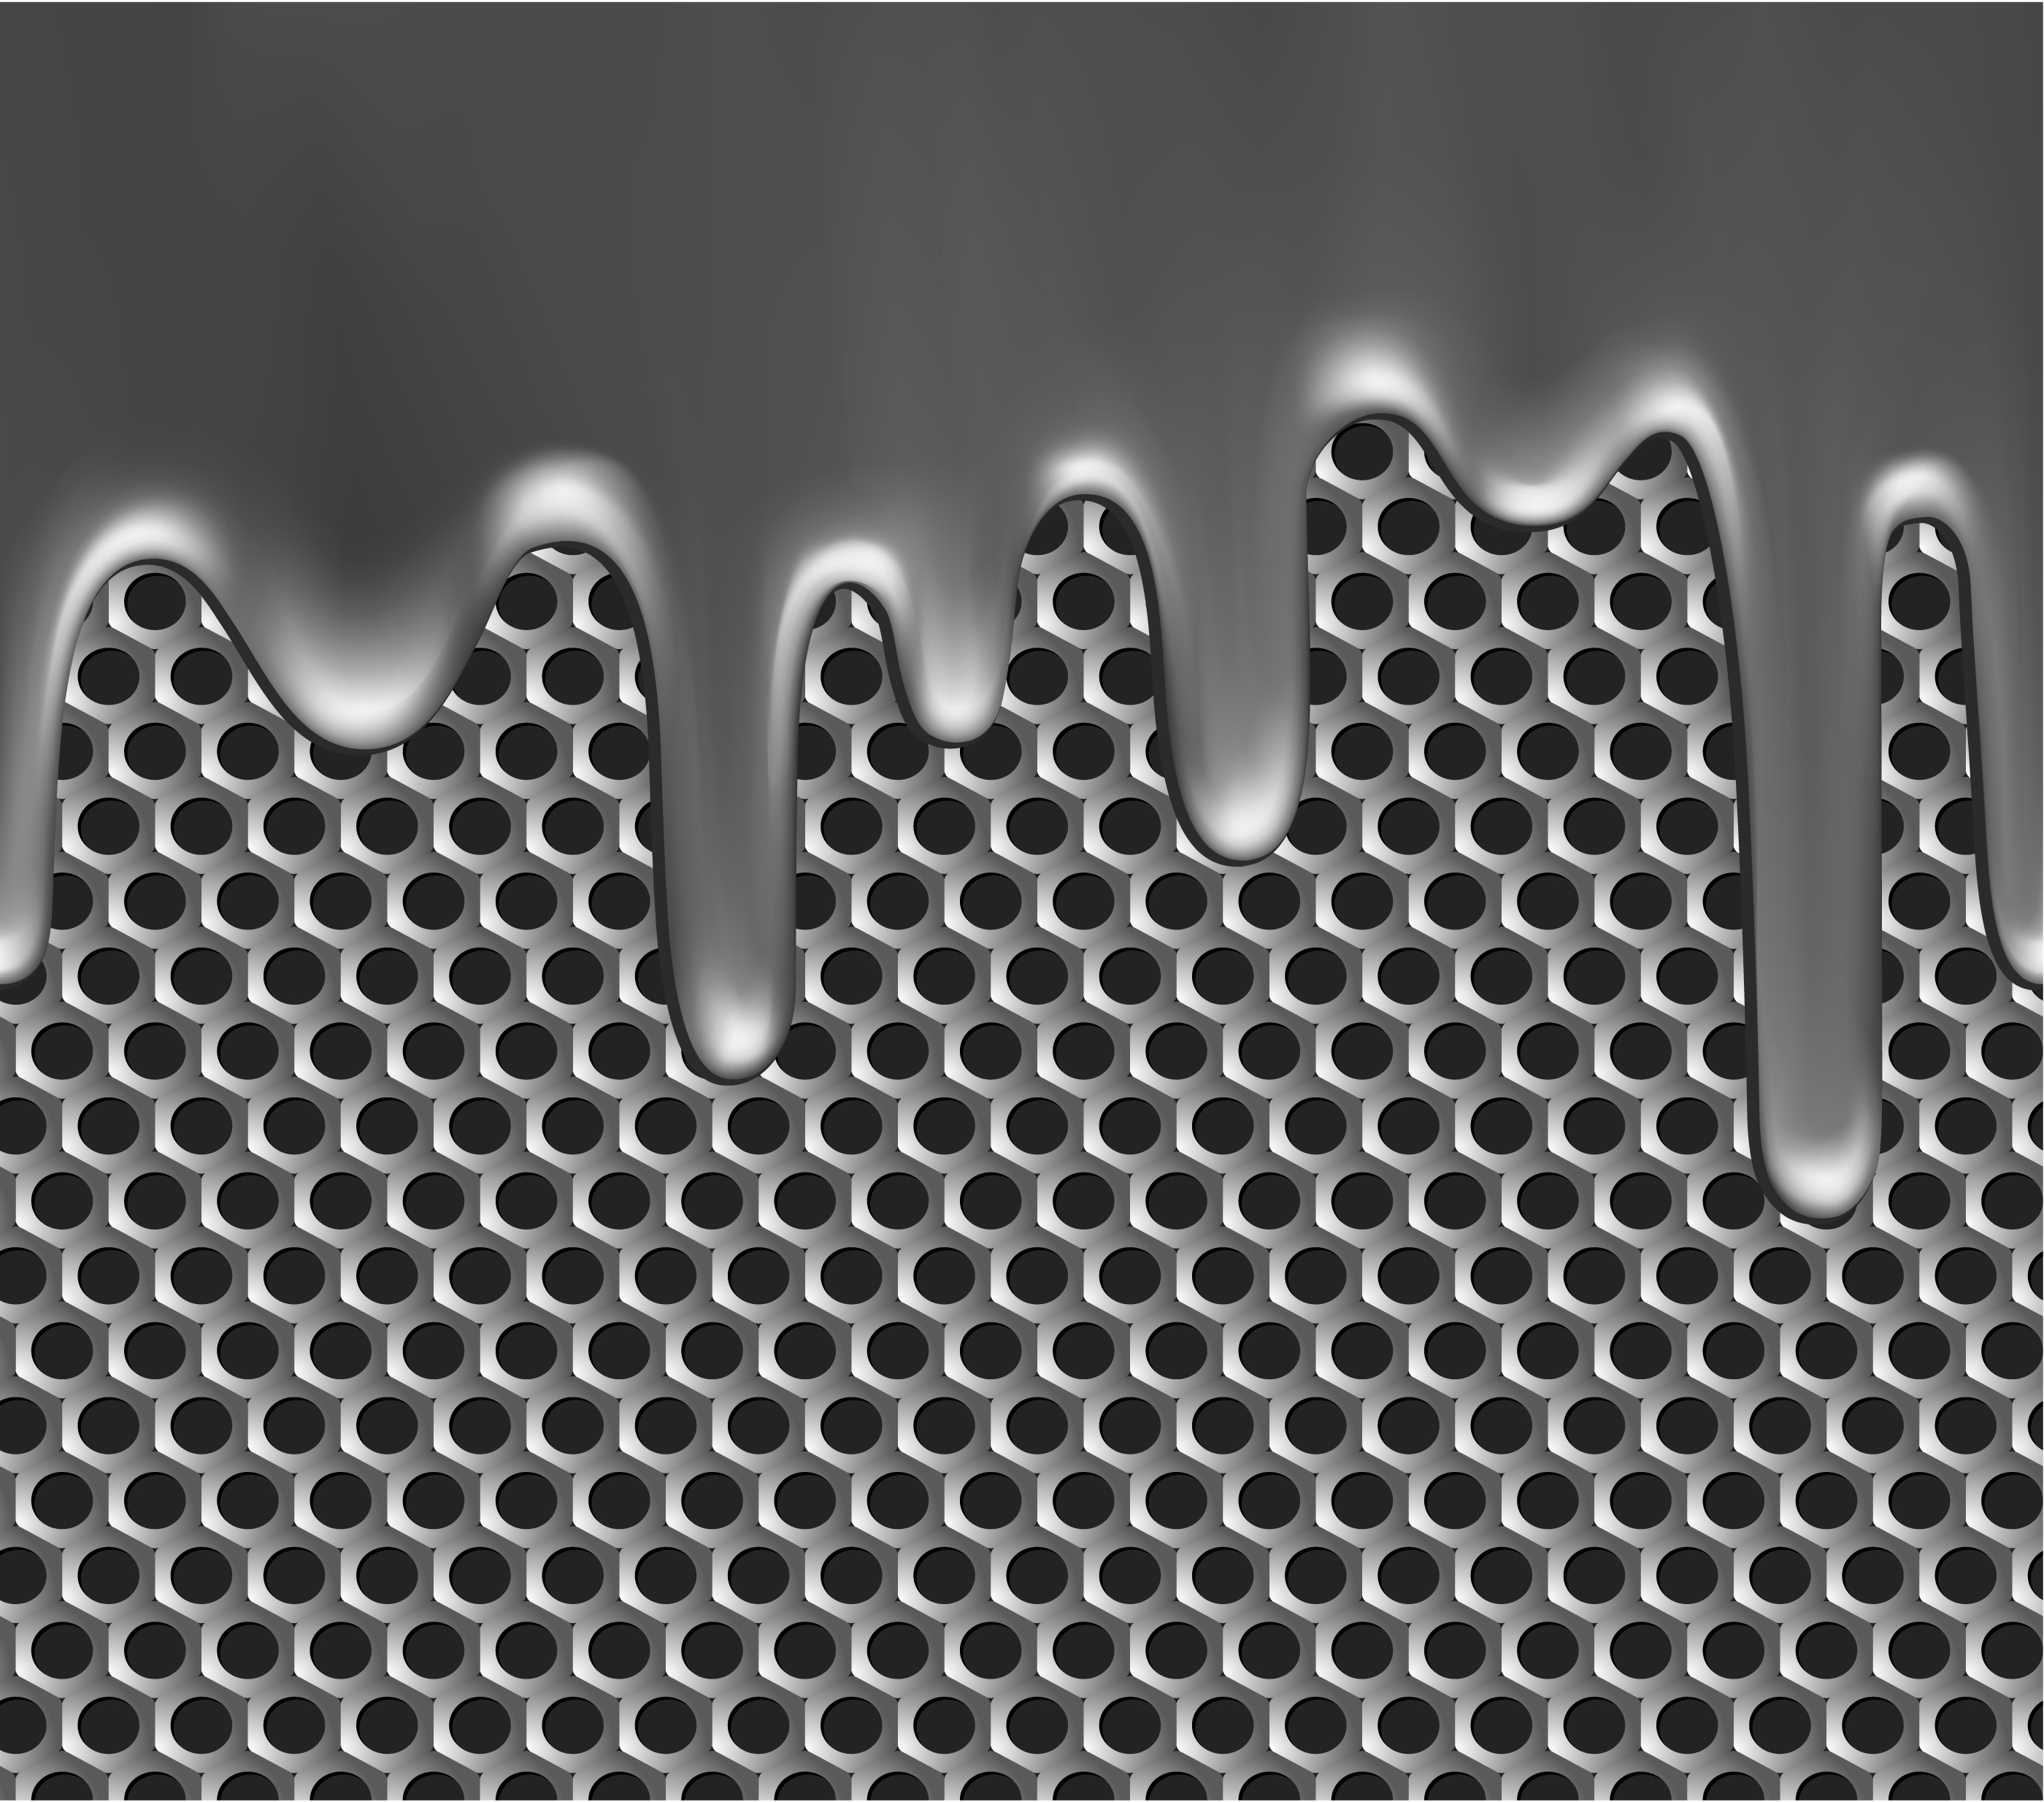 Images of Metal | 2800x2468